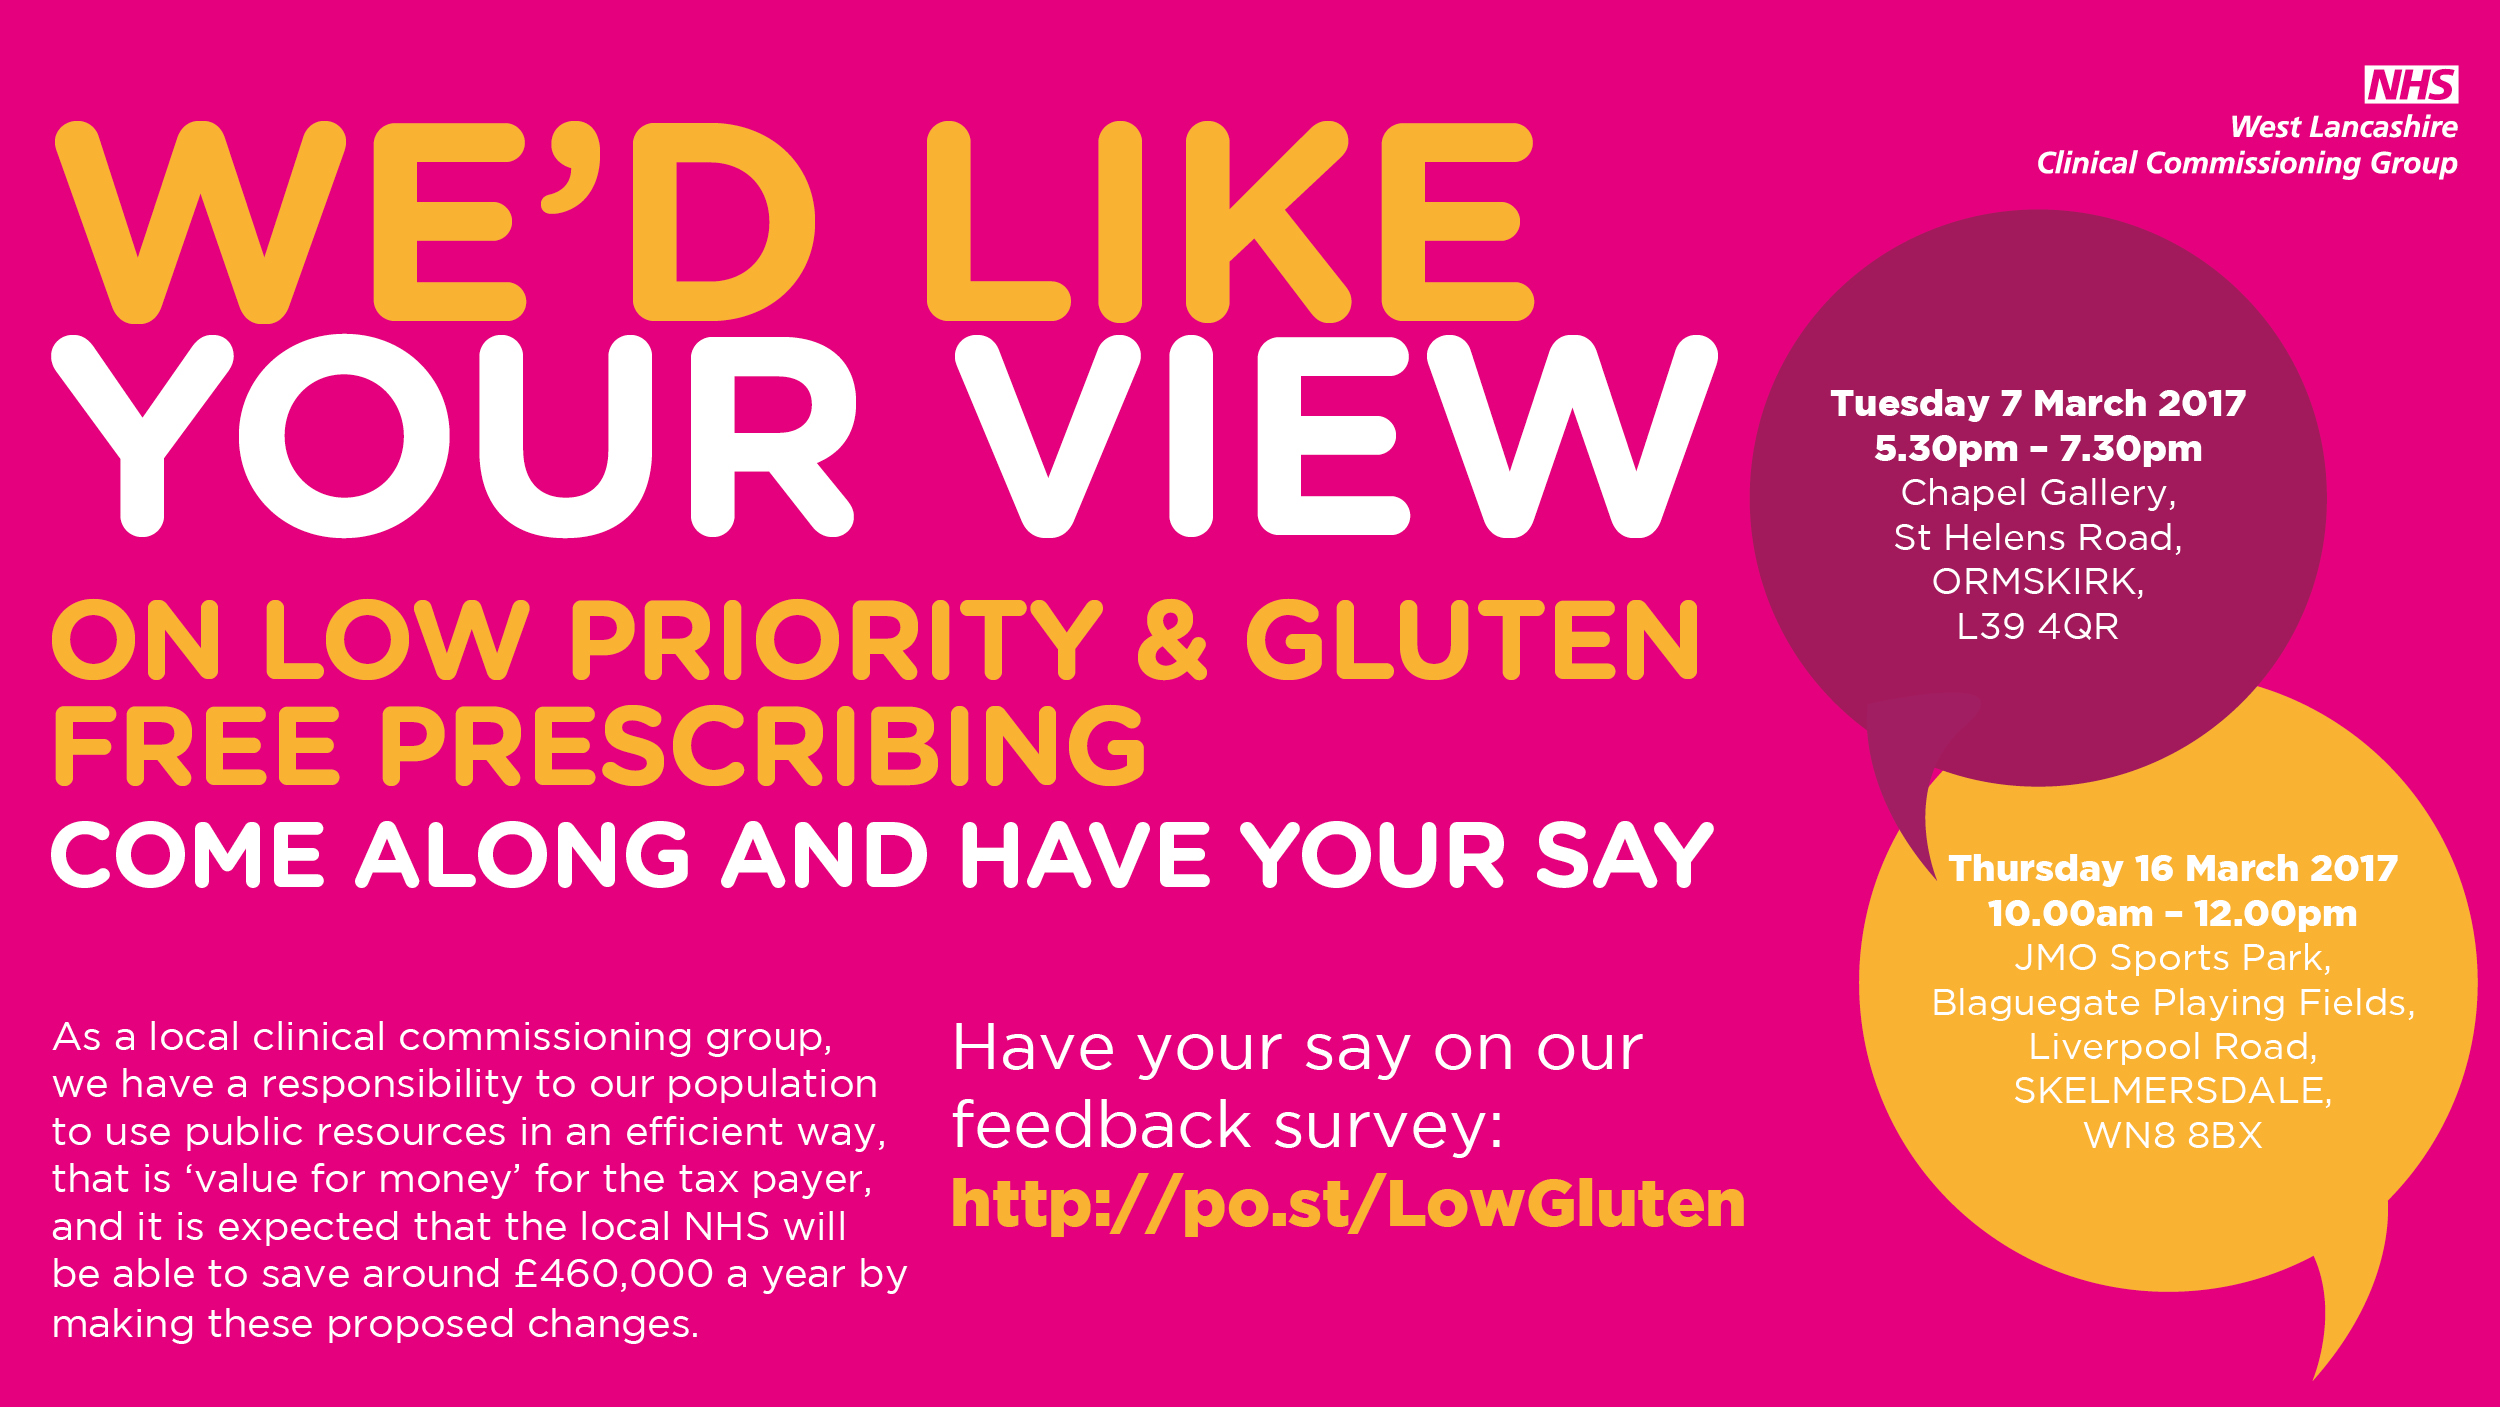 , Residents encouraged to have their say about low priority & gluten free prescribing at public events, Skem News - The Top Source for Skelmersdale News